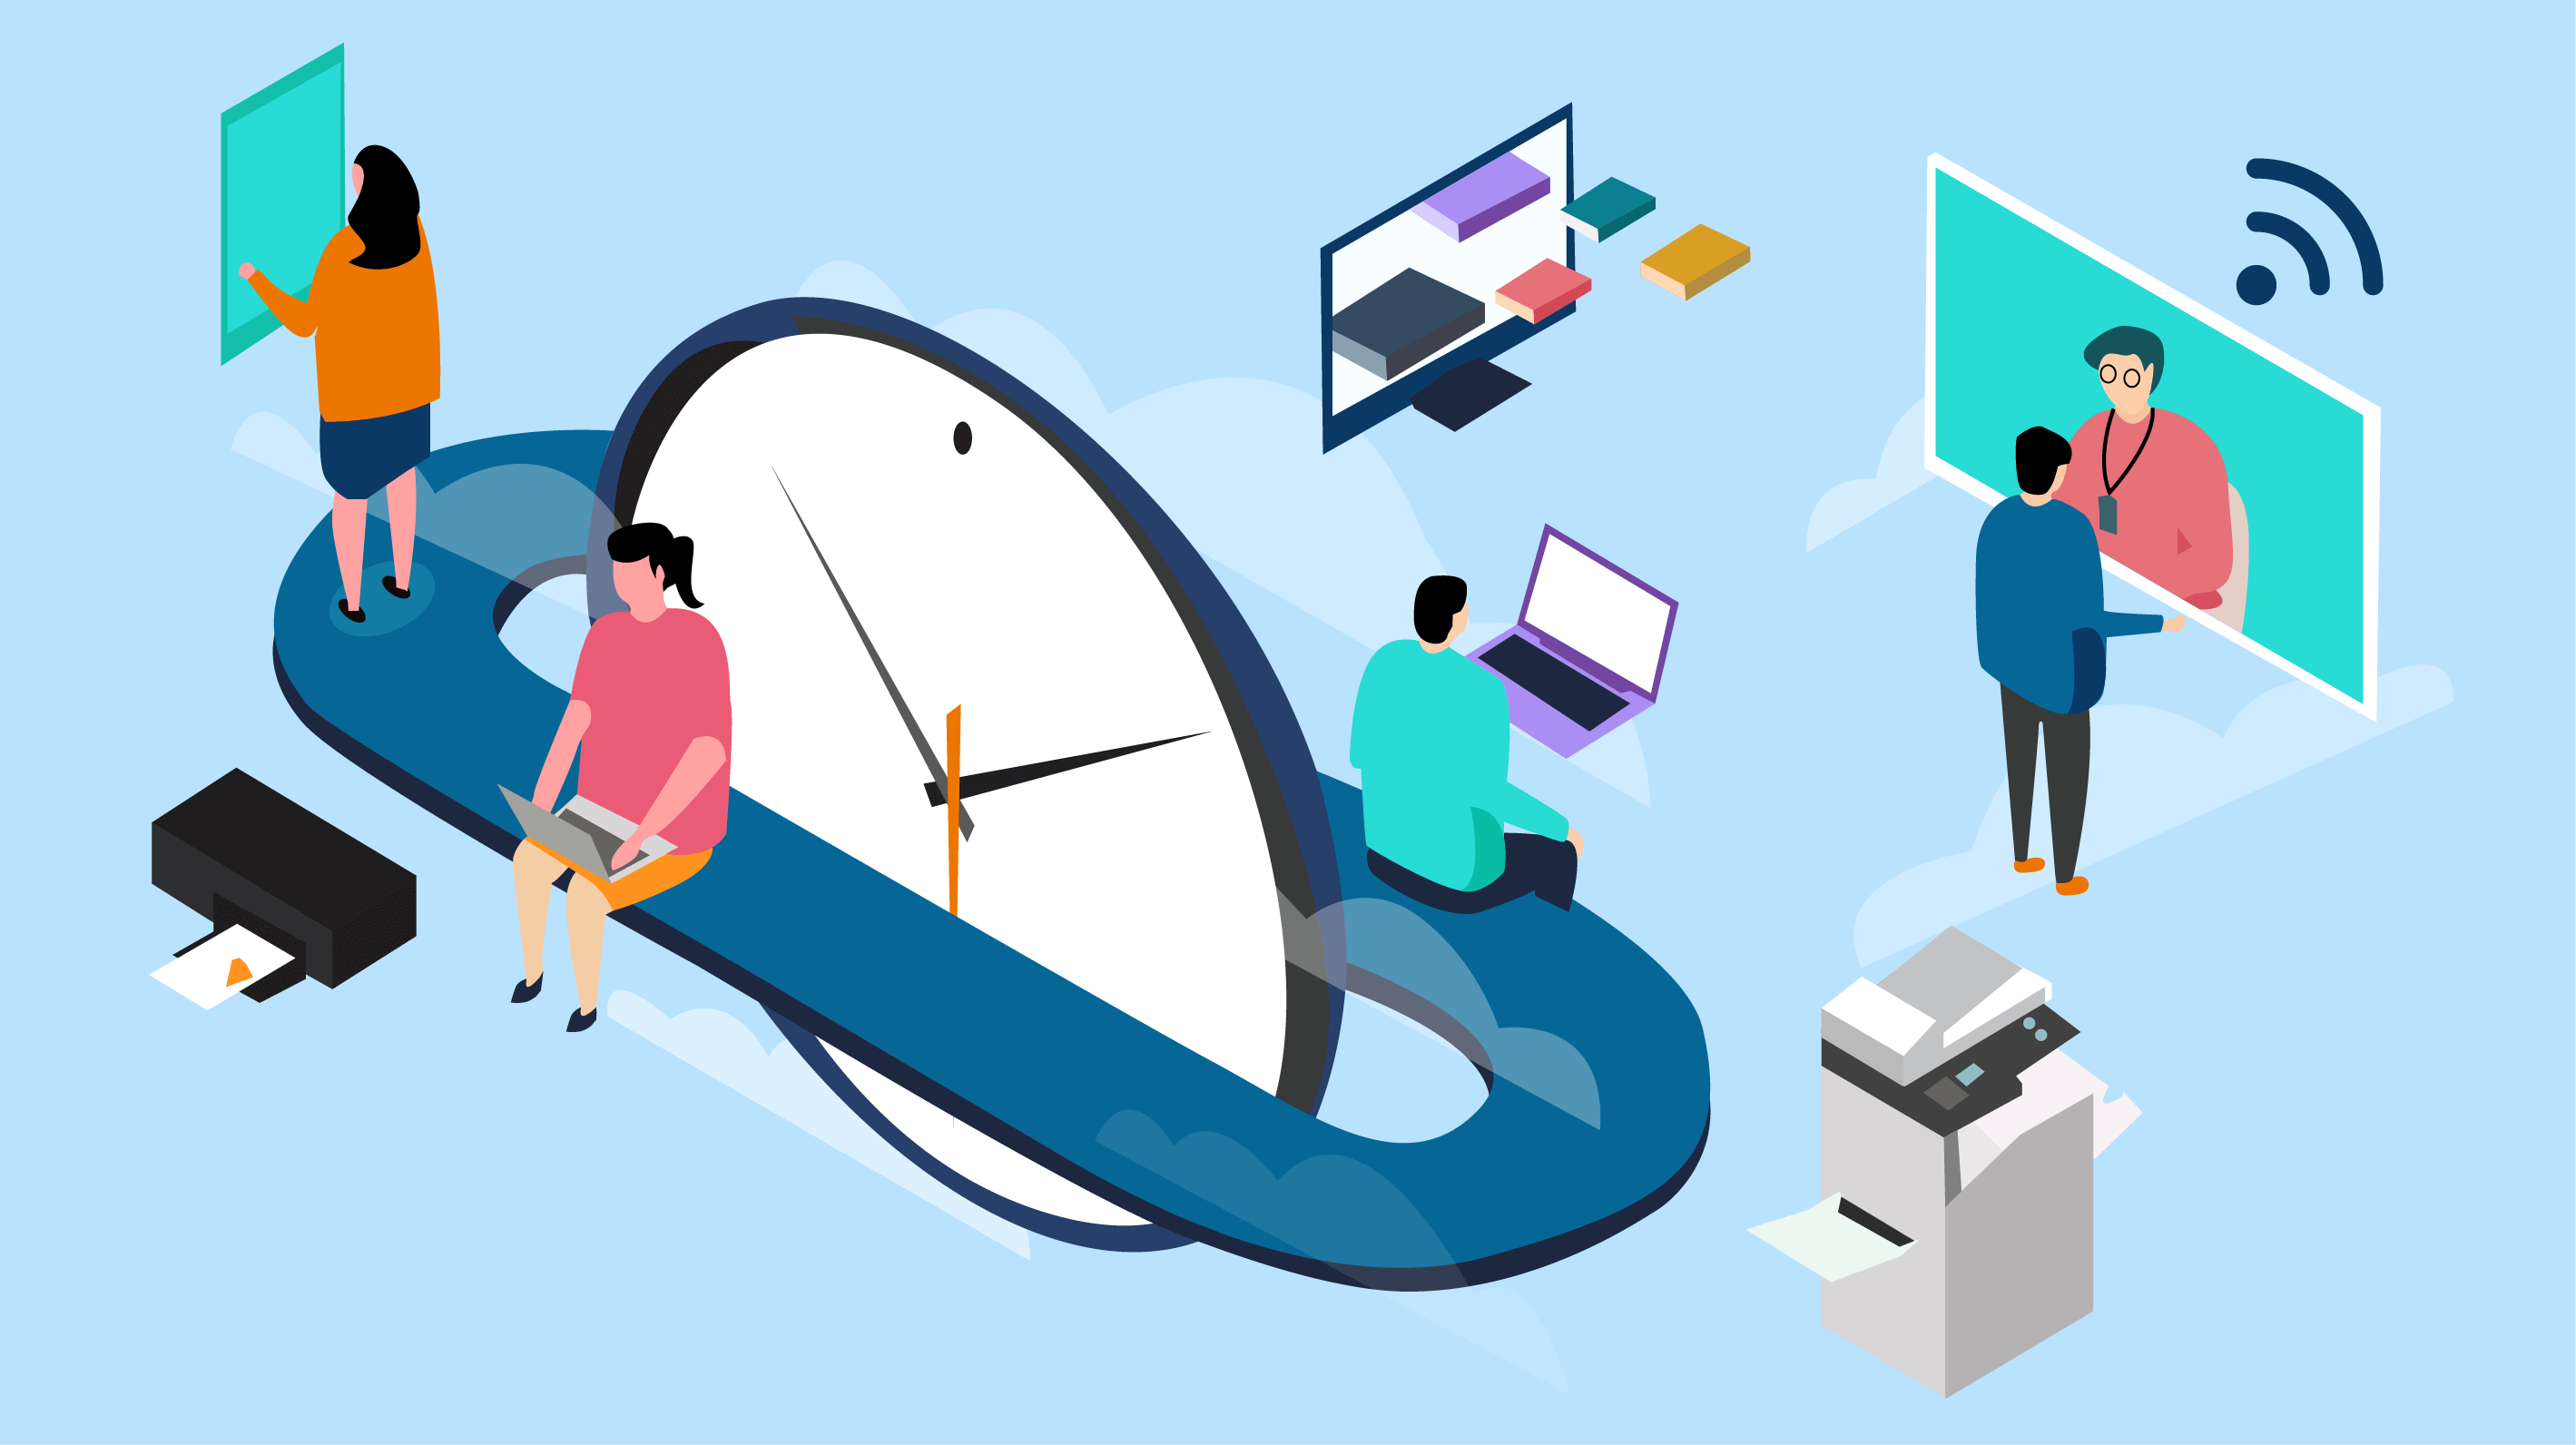 8 Ways To Increase Employee Productivity In The Workplace